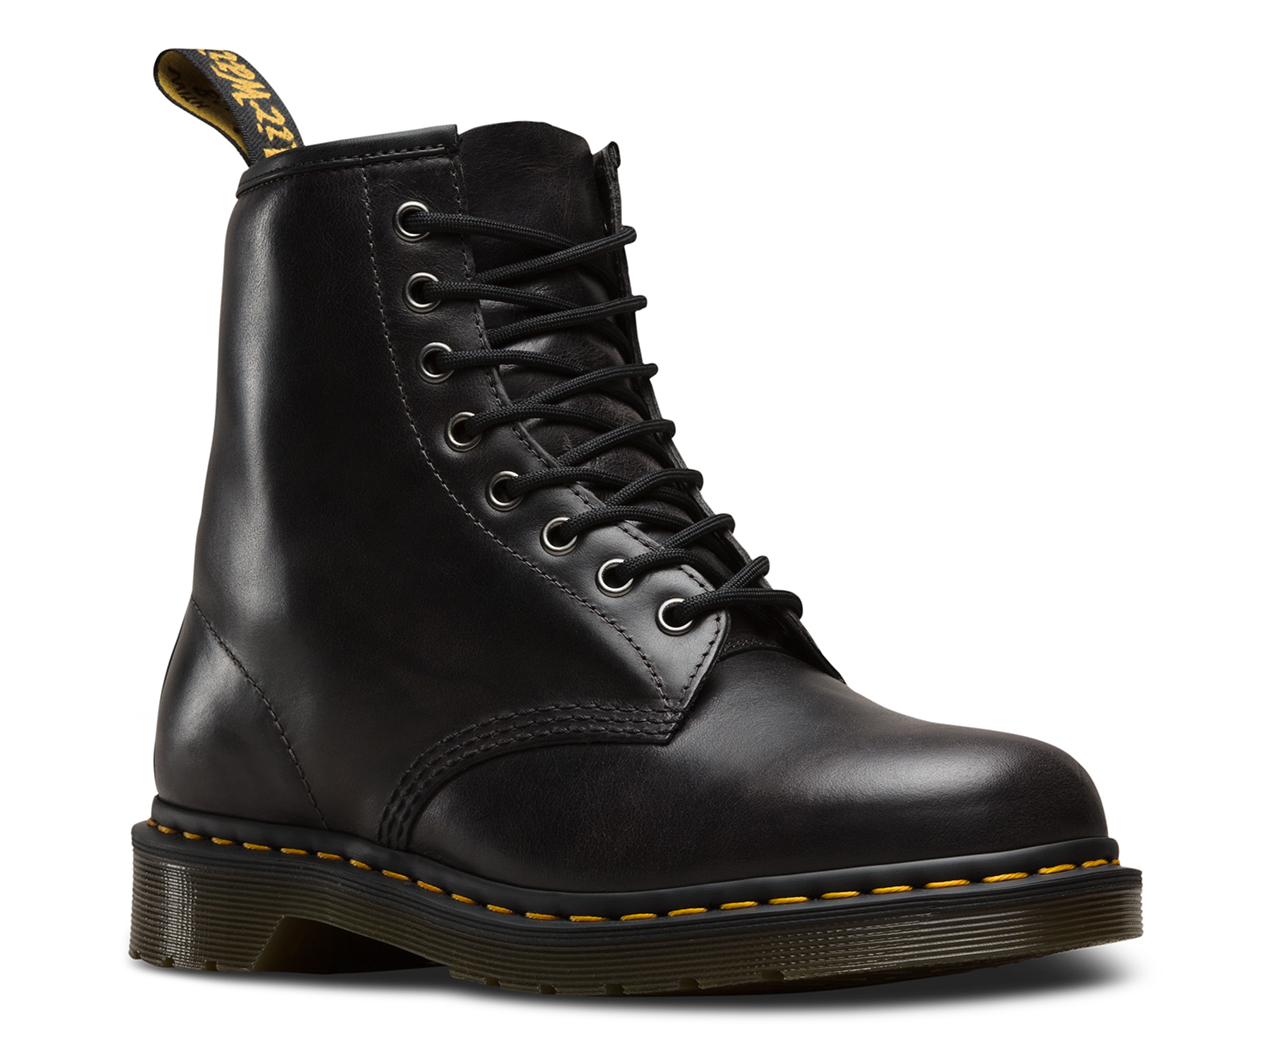 0a5baa840f 1460 ORLEANS | Women's Boots & Shoes | Canada